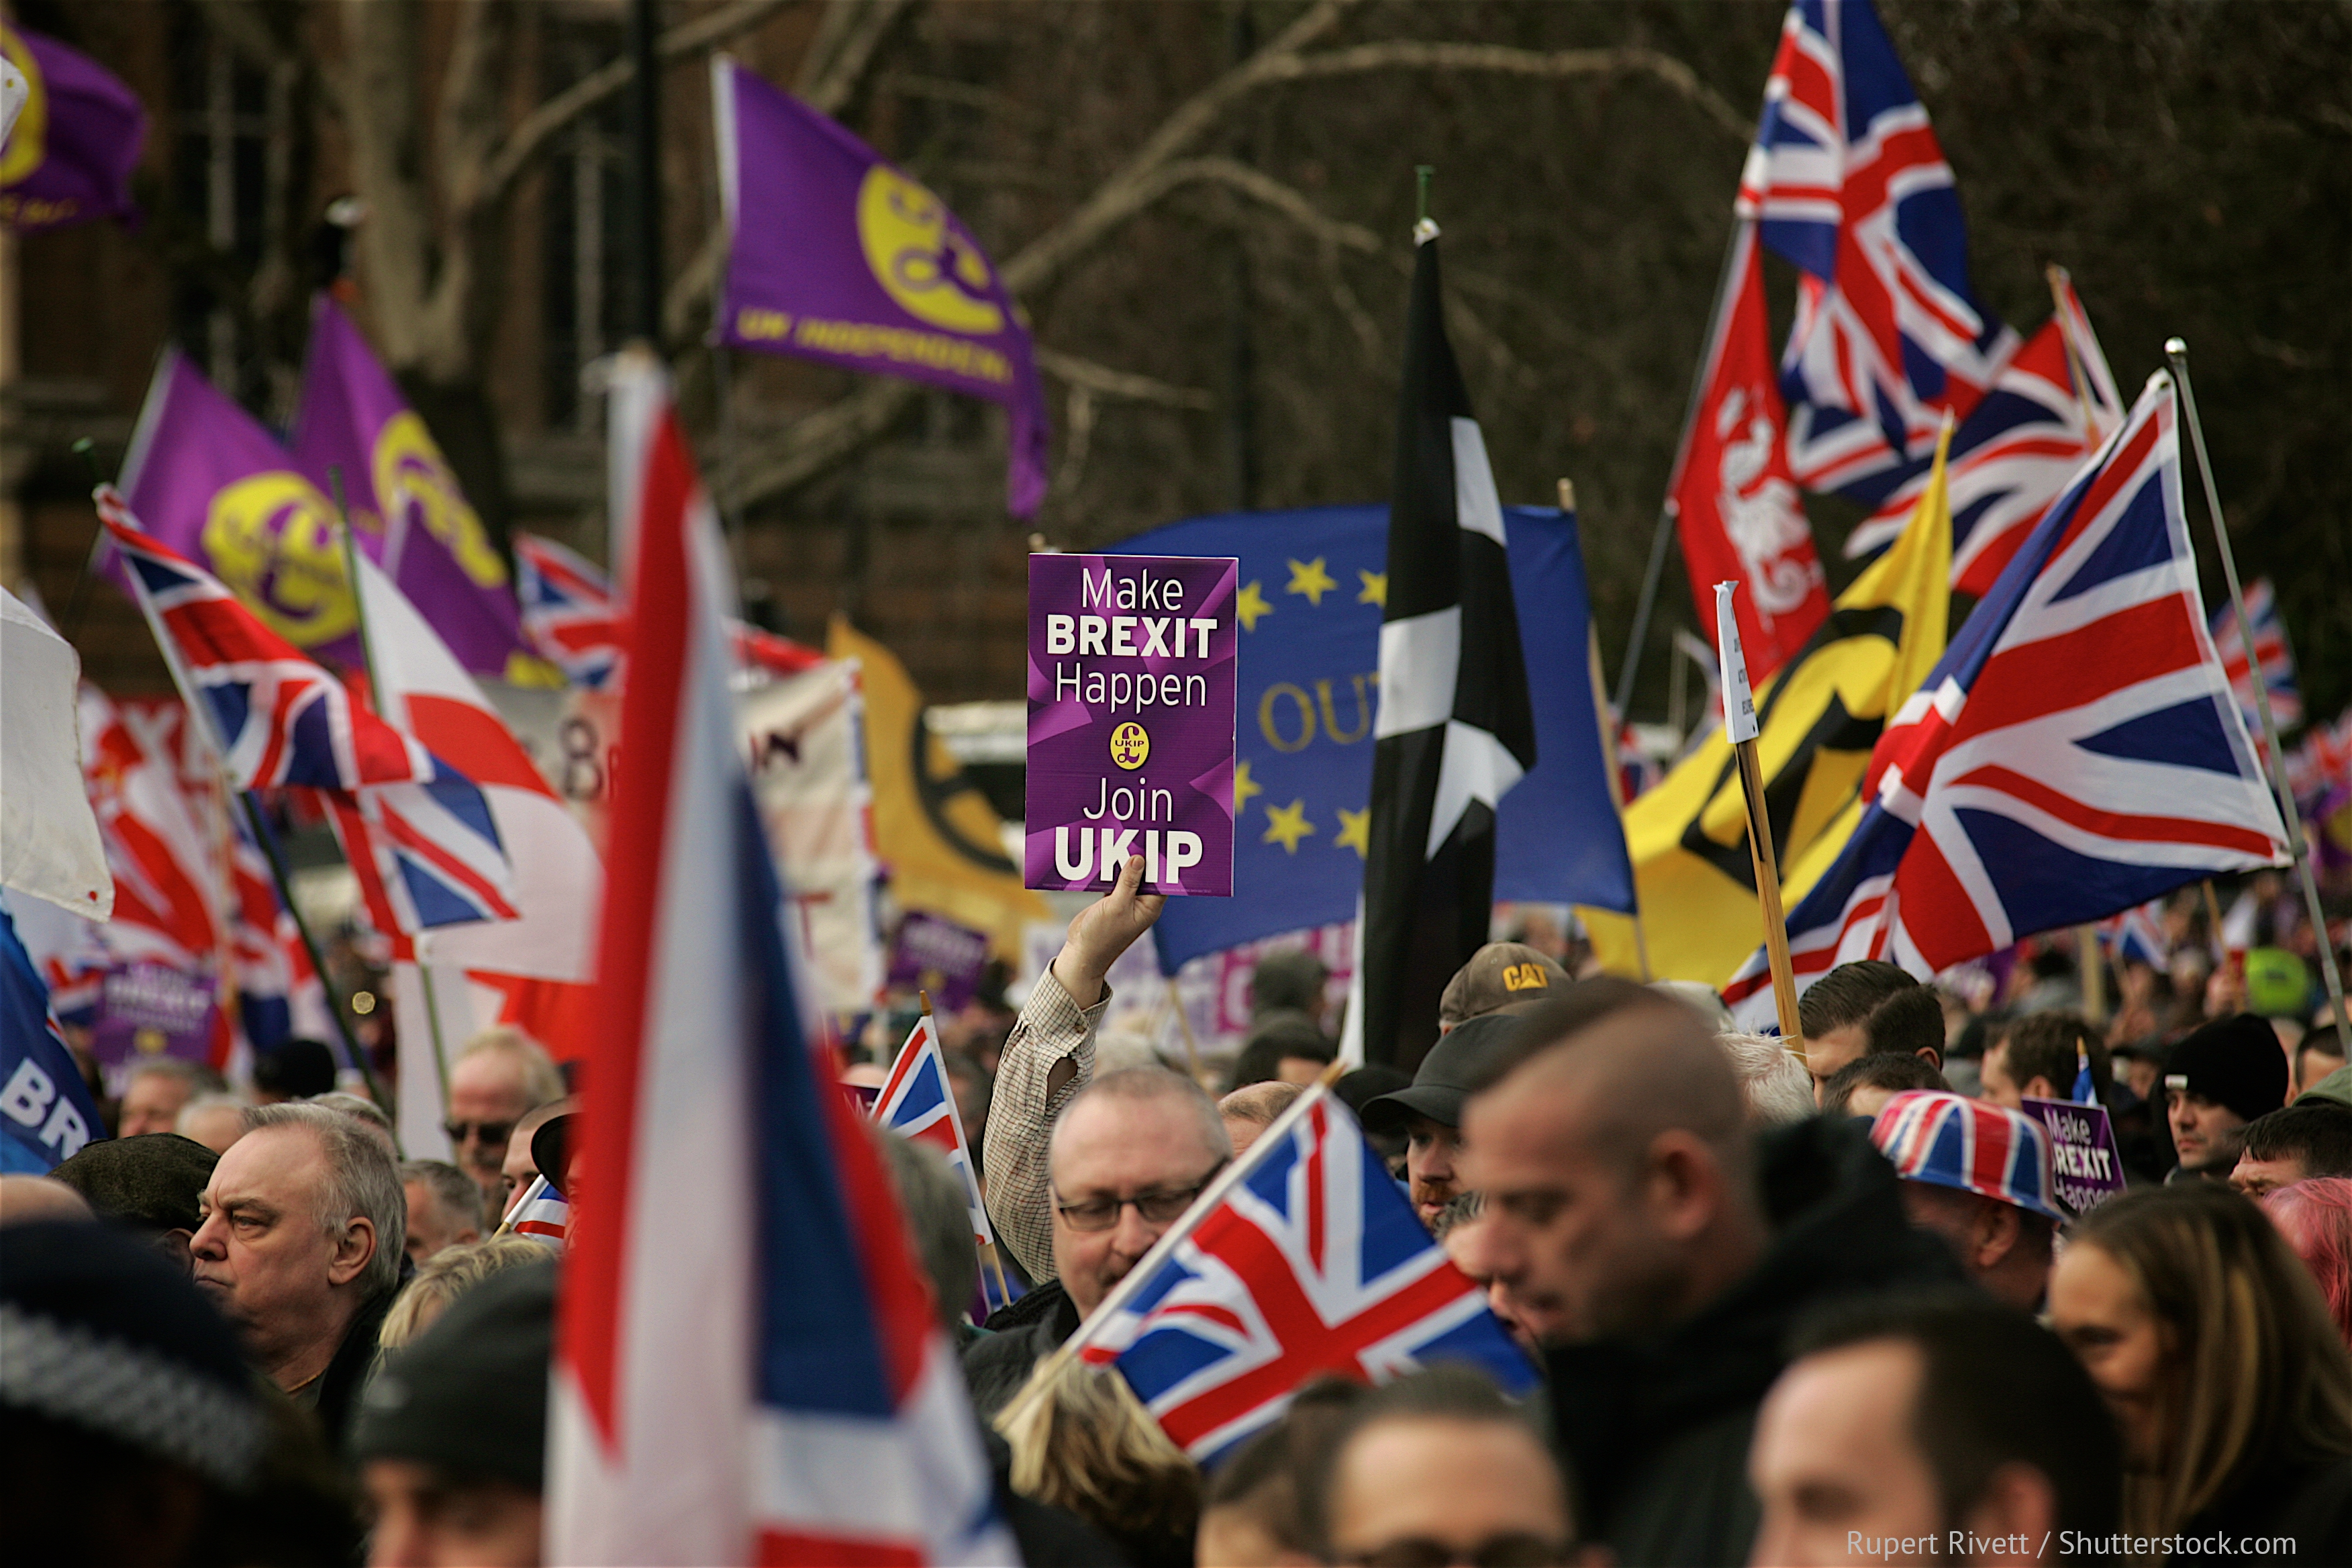 UKIP and Pro Brexit protest